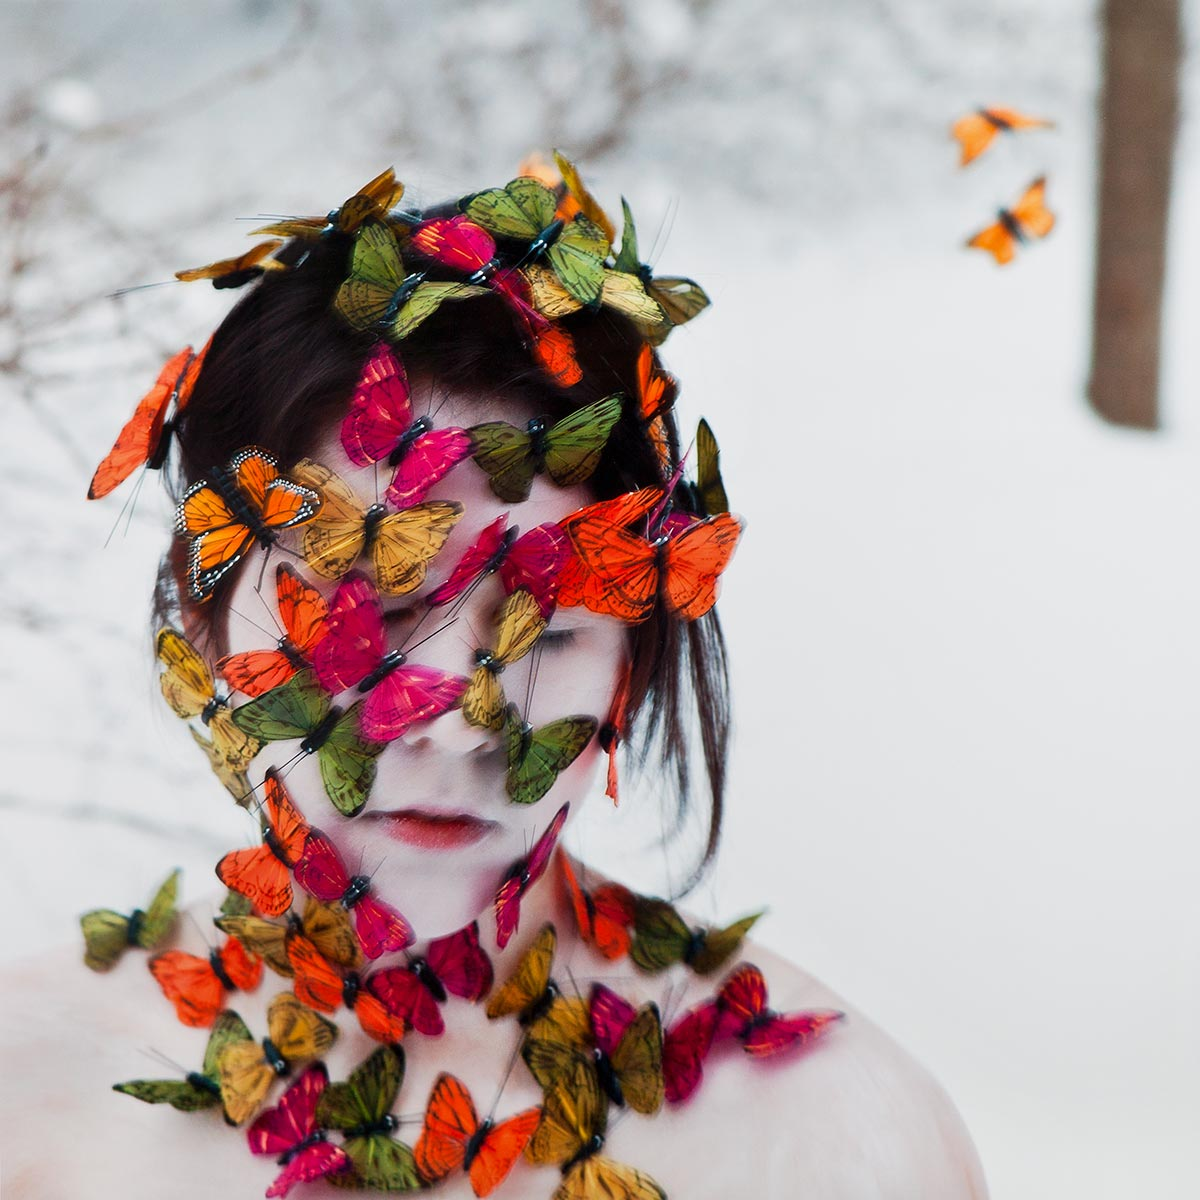 White snowy background with young woman in foreground covered in white makeup/powder shown from the shoulders up covered in green, fuschia, orange and yellow butterflies.